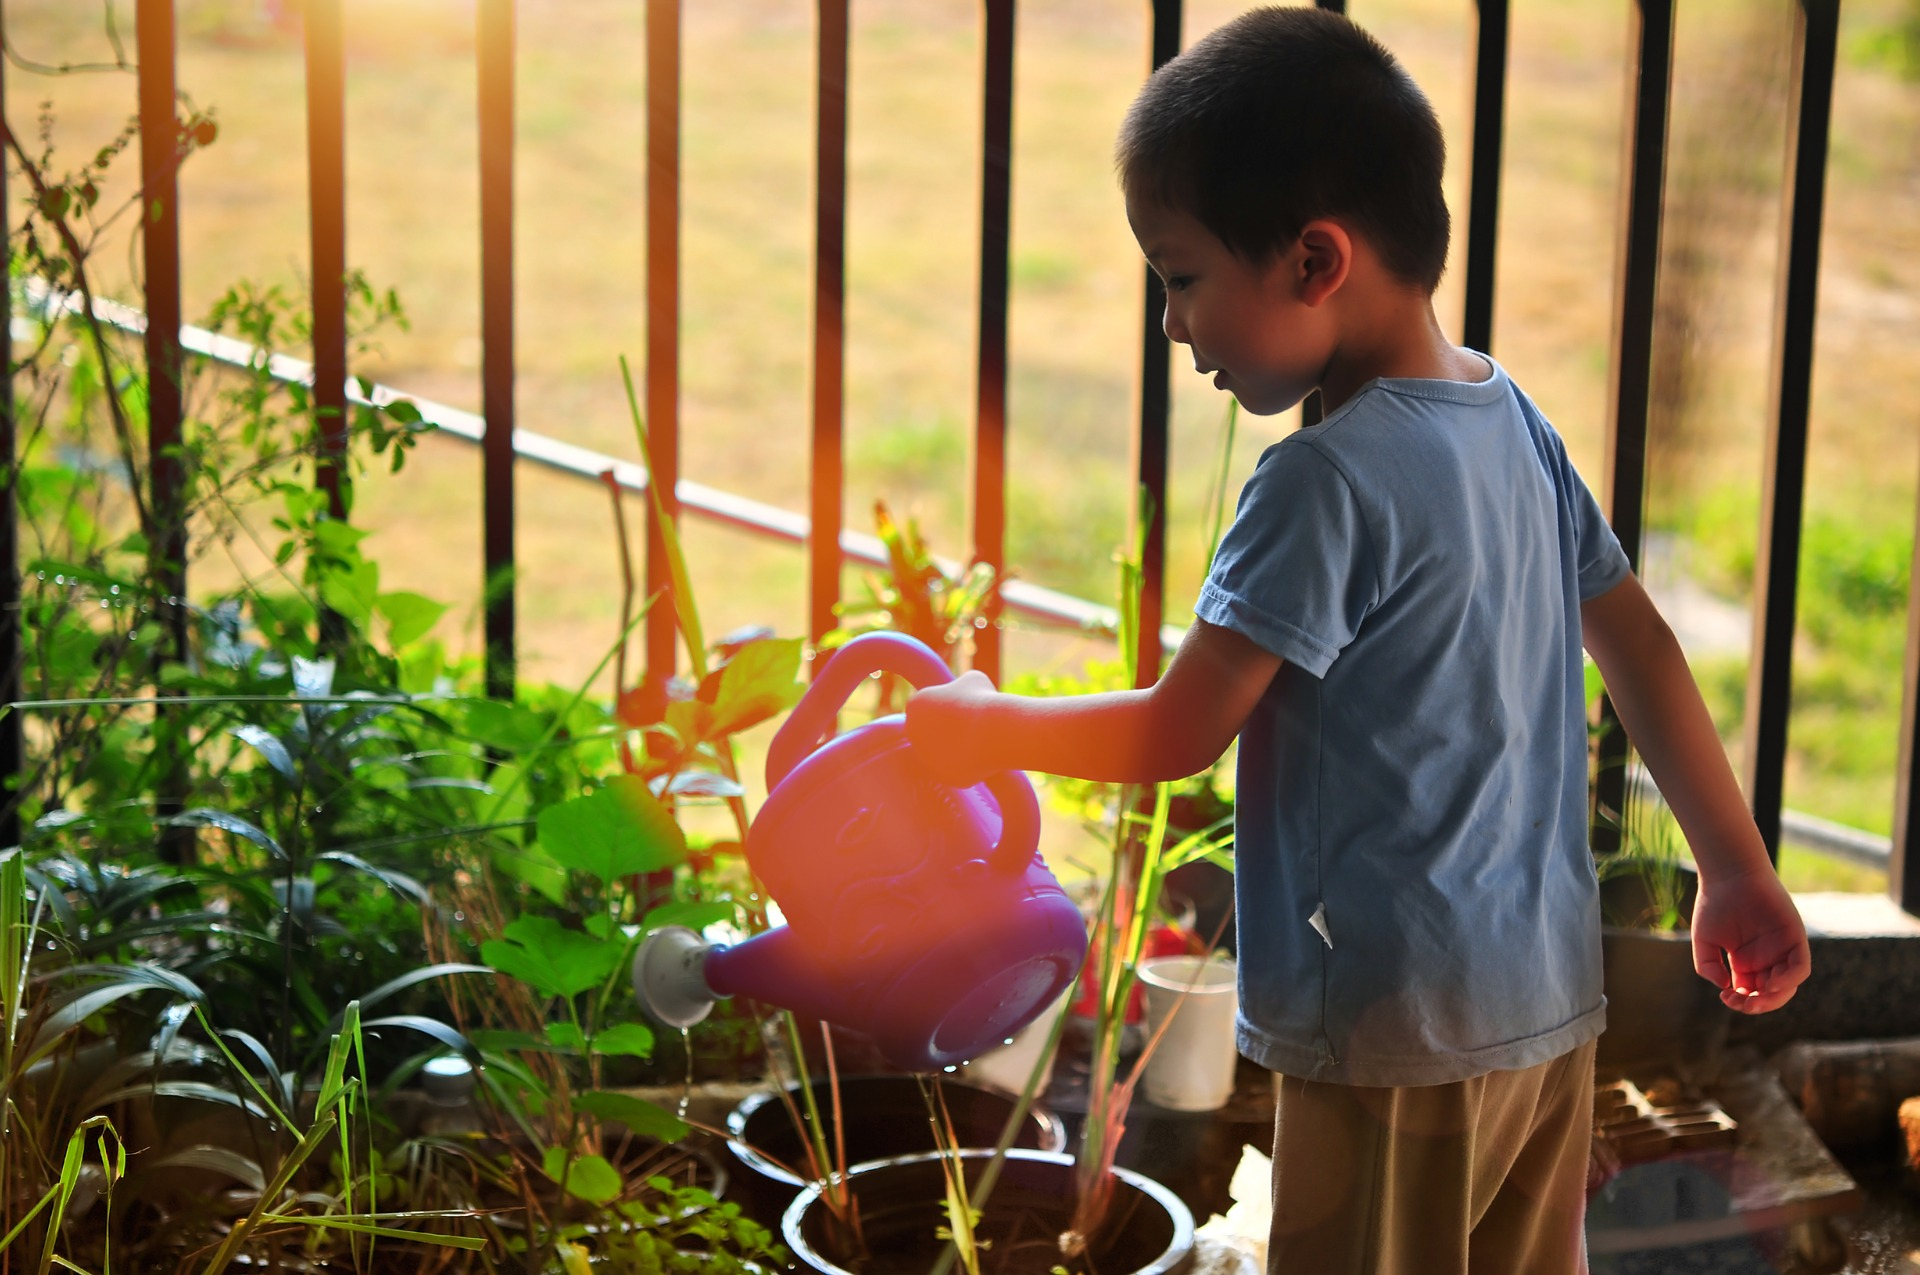 child watering garden with can